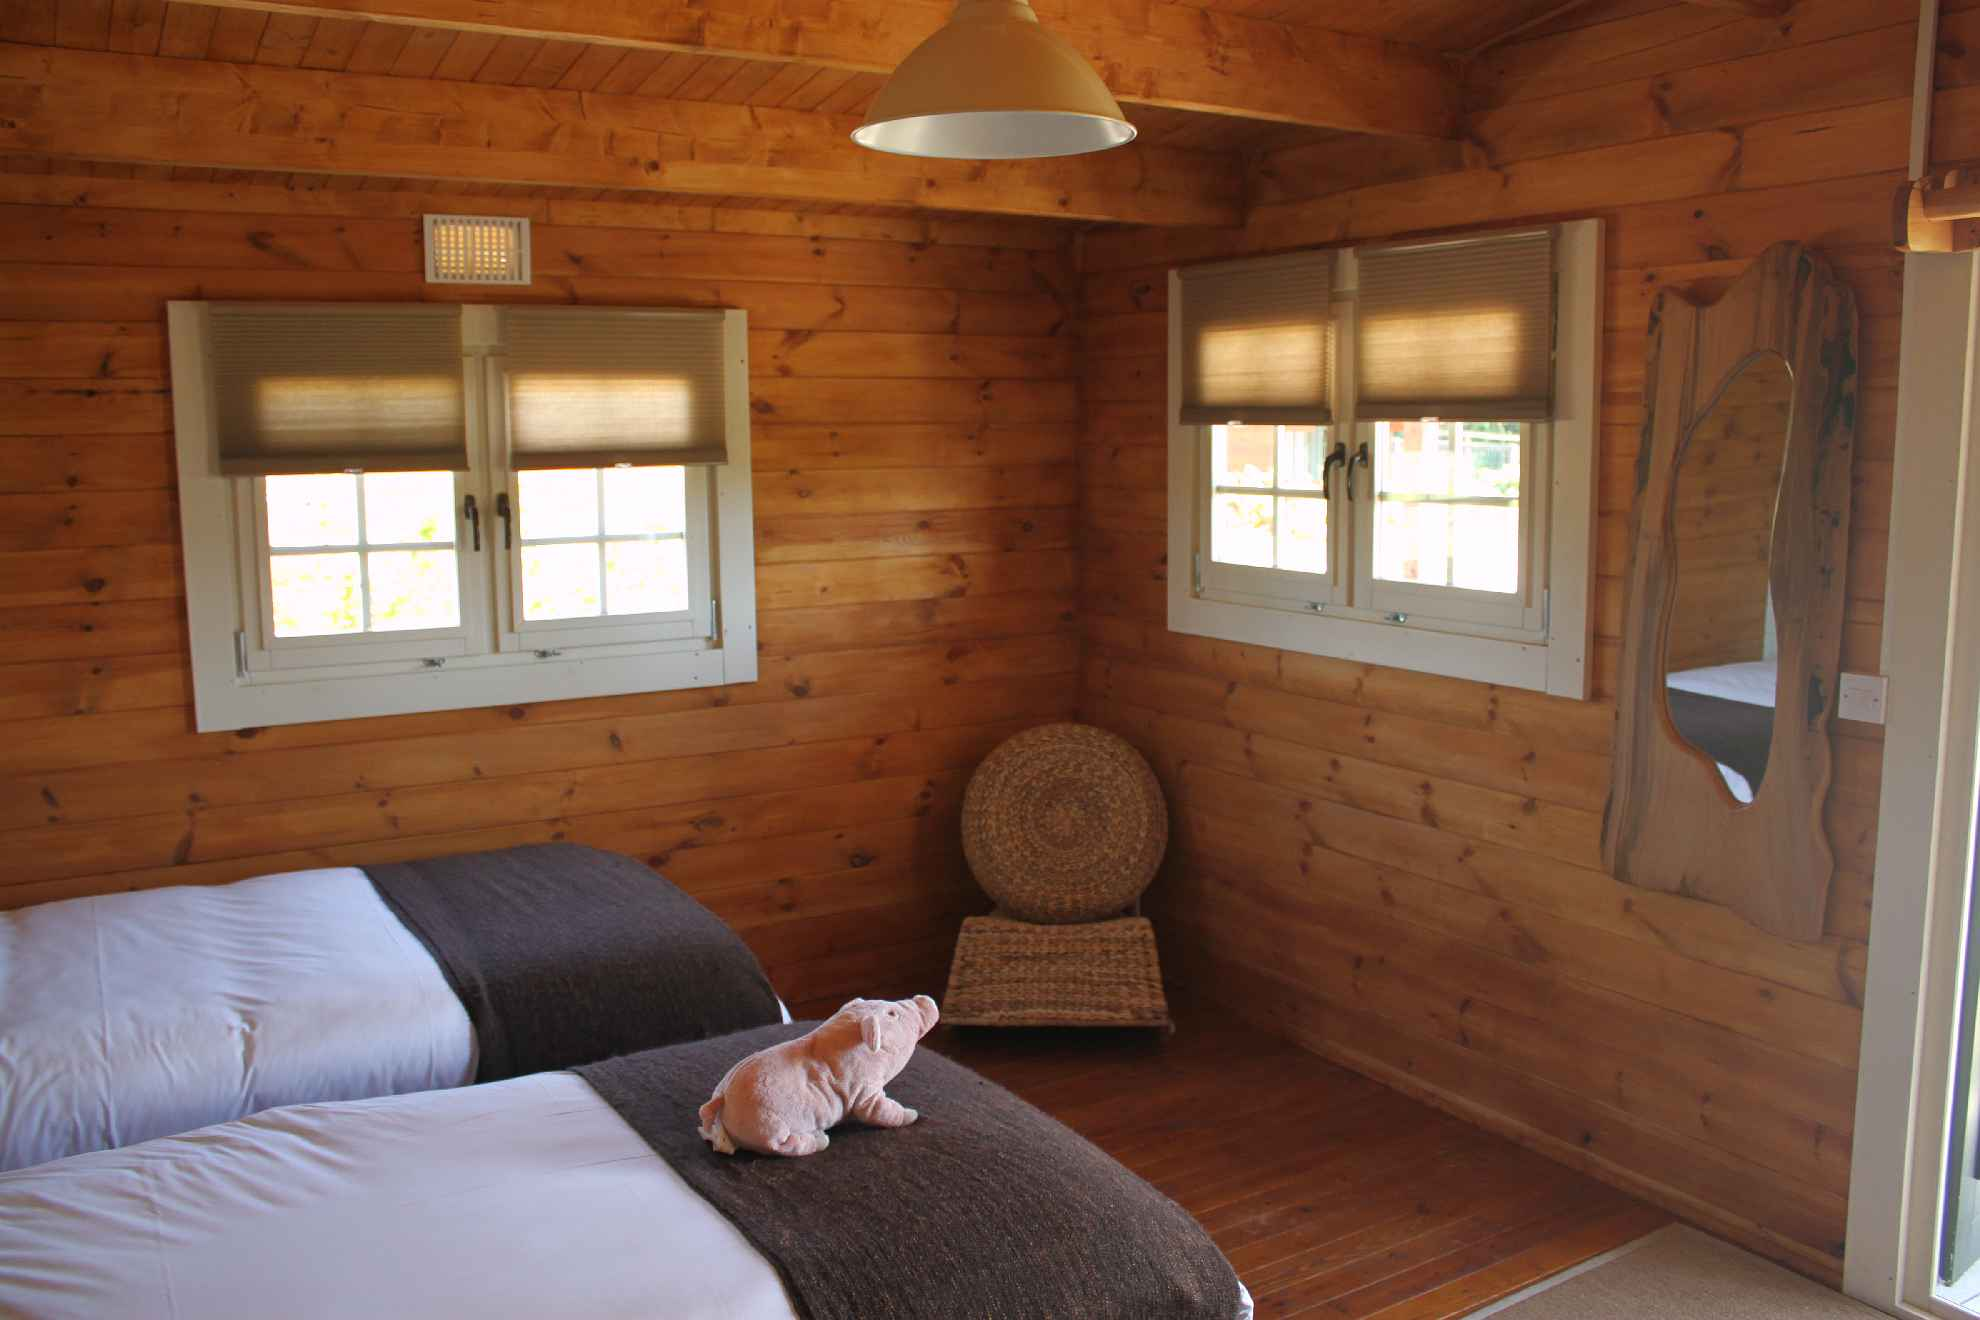 Glamping Log Cabins Bedroom 2